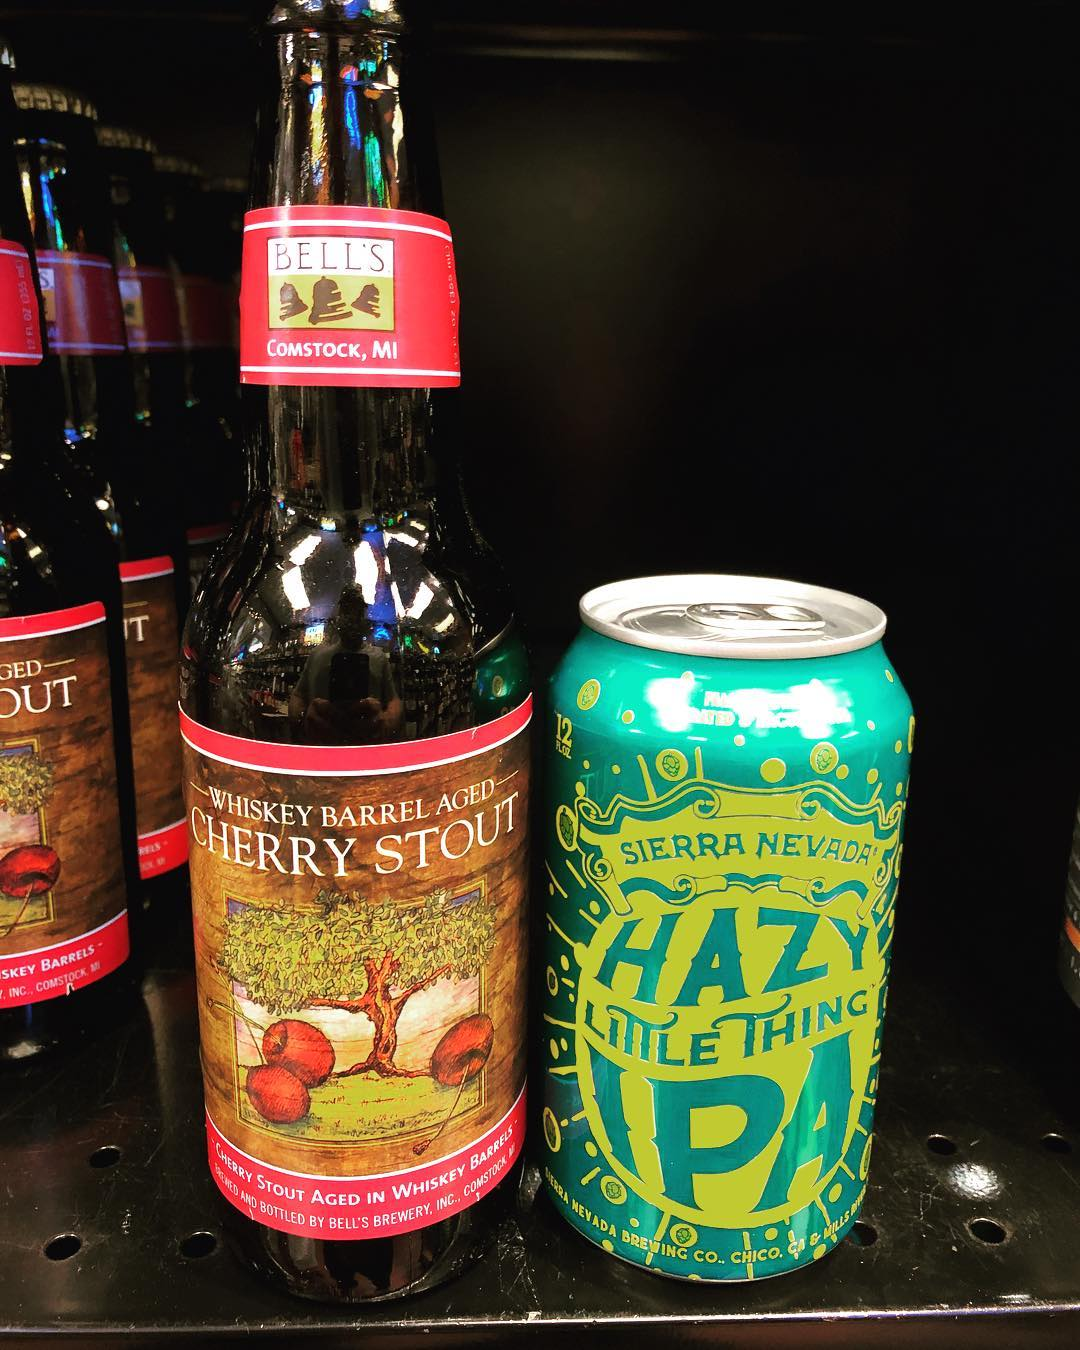 More new brews available at our Perkins add location! @sierranevada @bellsbrewery #newbrewthursday #barrelaged #beer